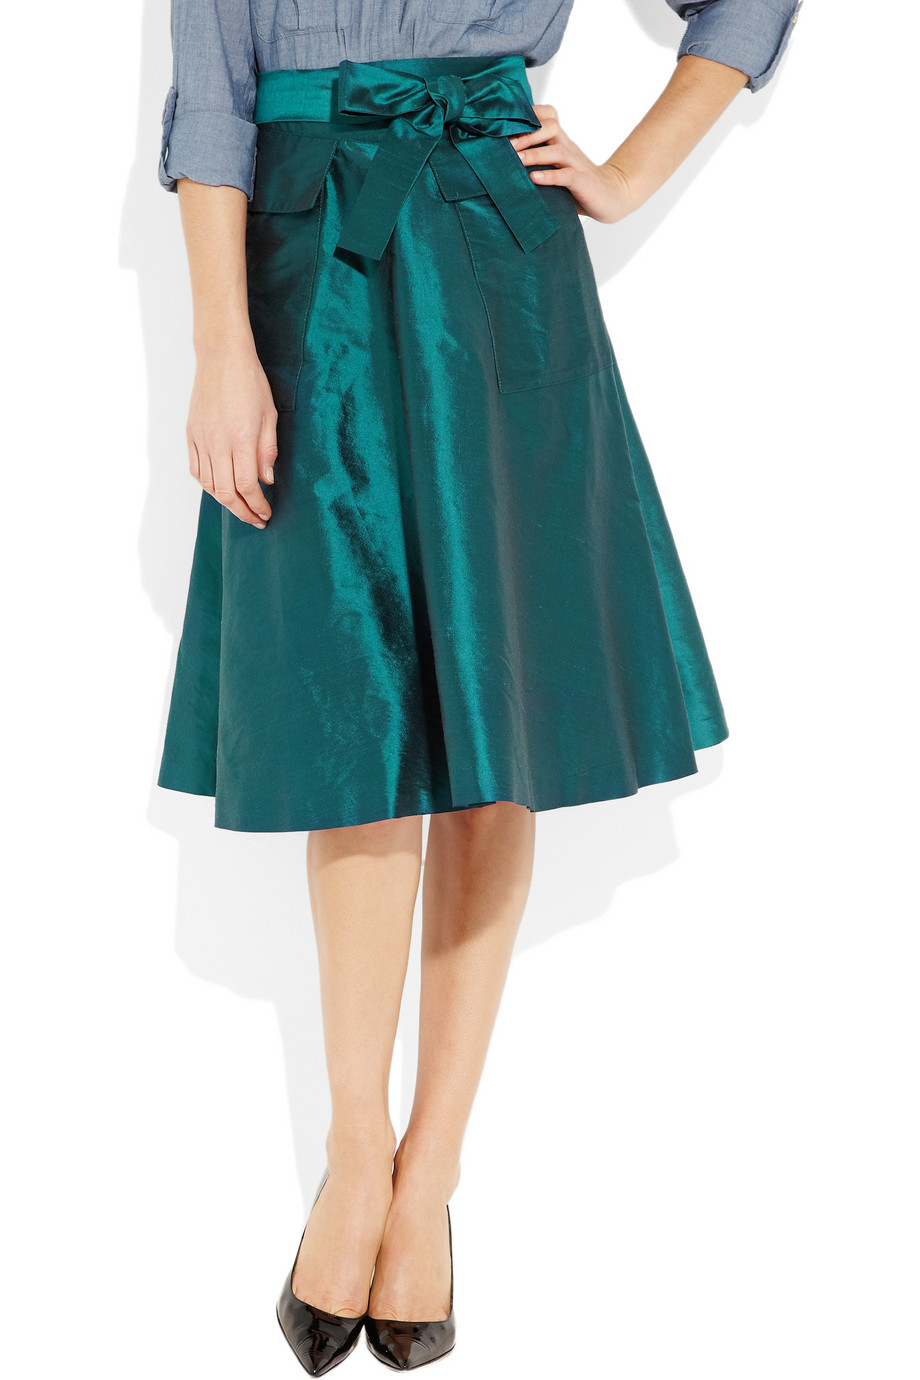 J.crew Silk-shantung A-line Skirt in Blue | Lyst